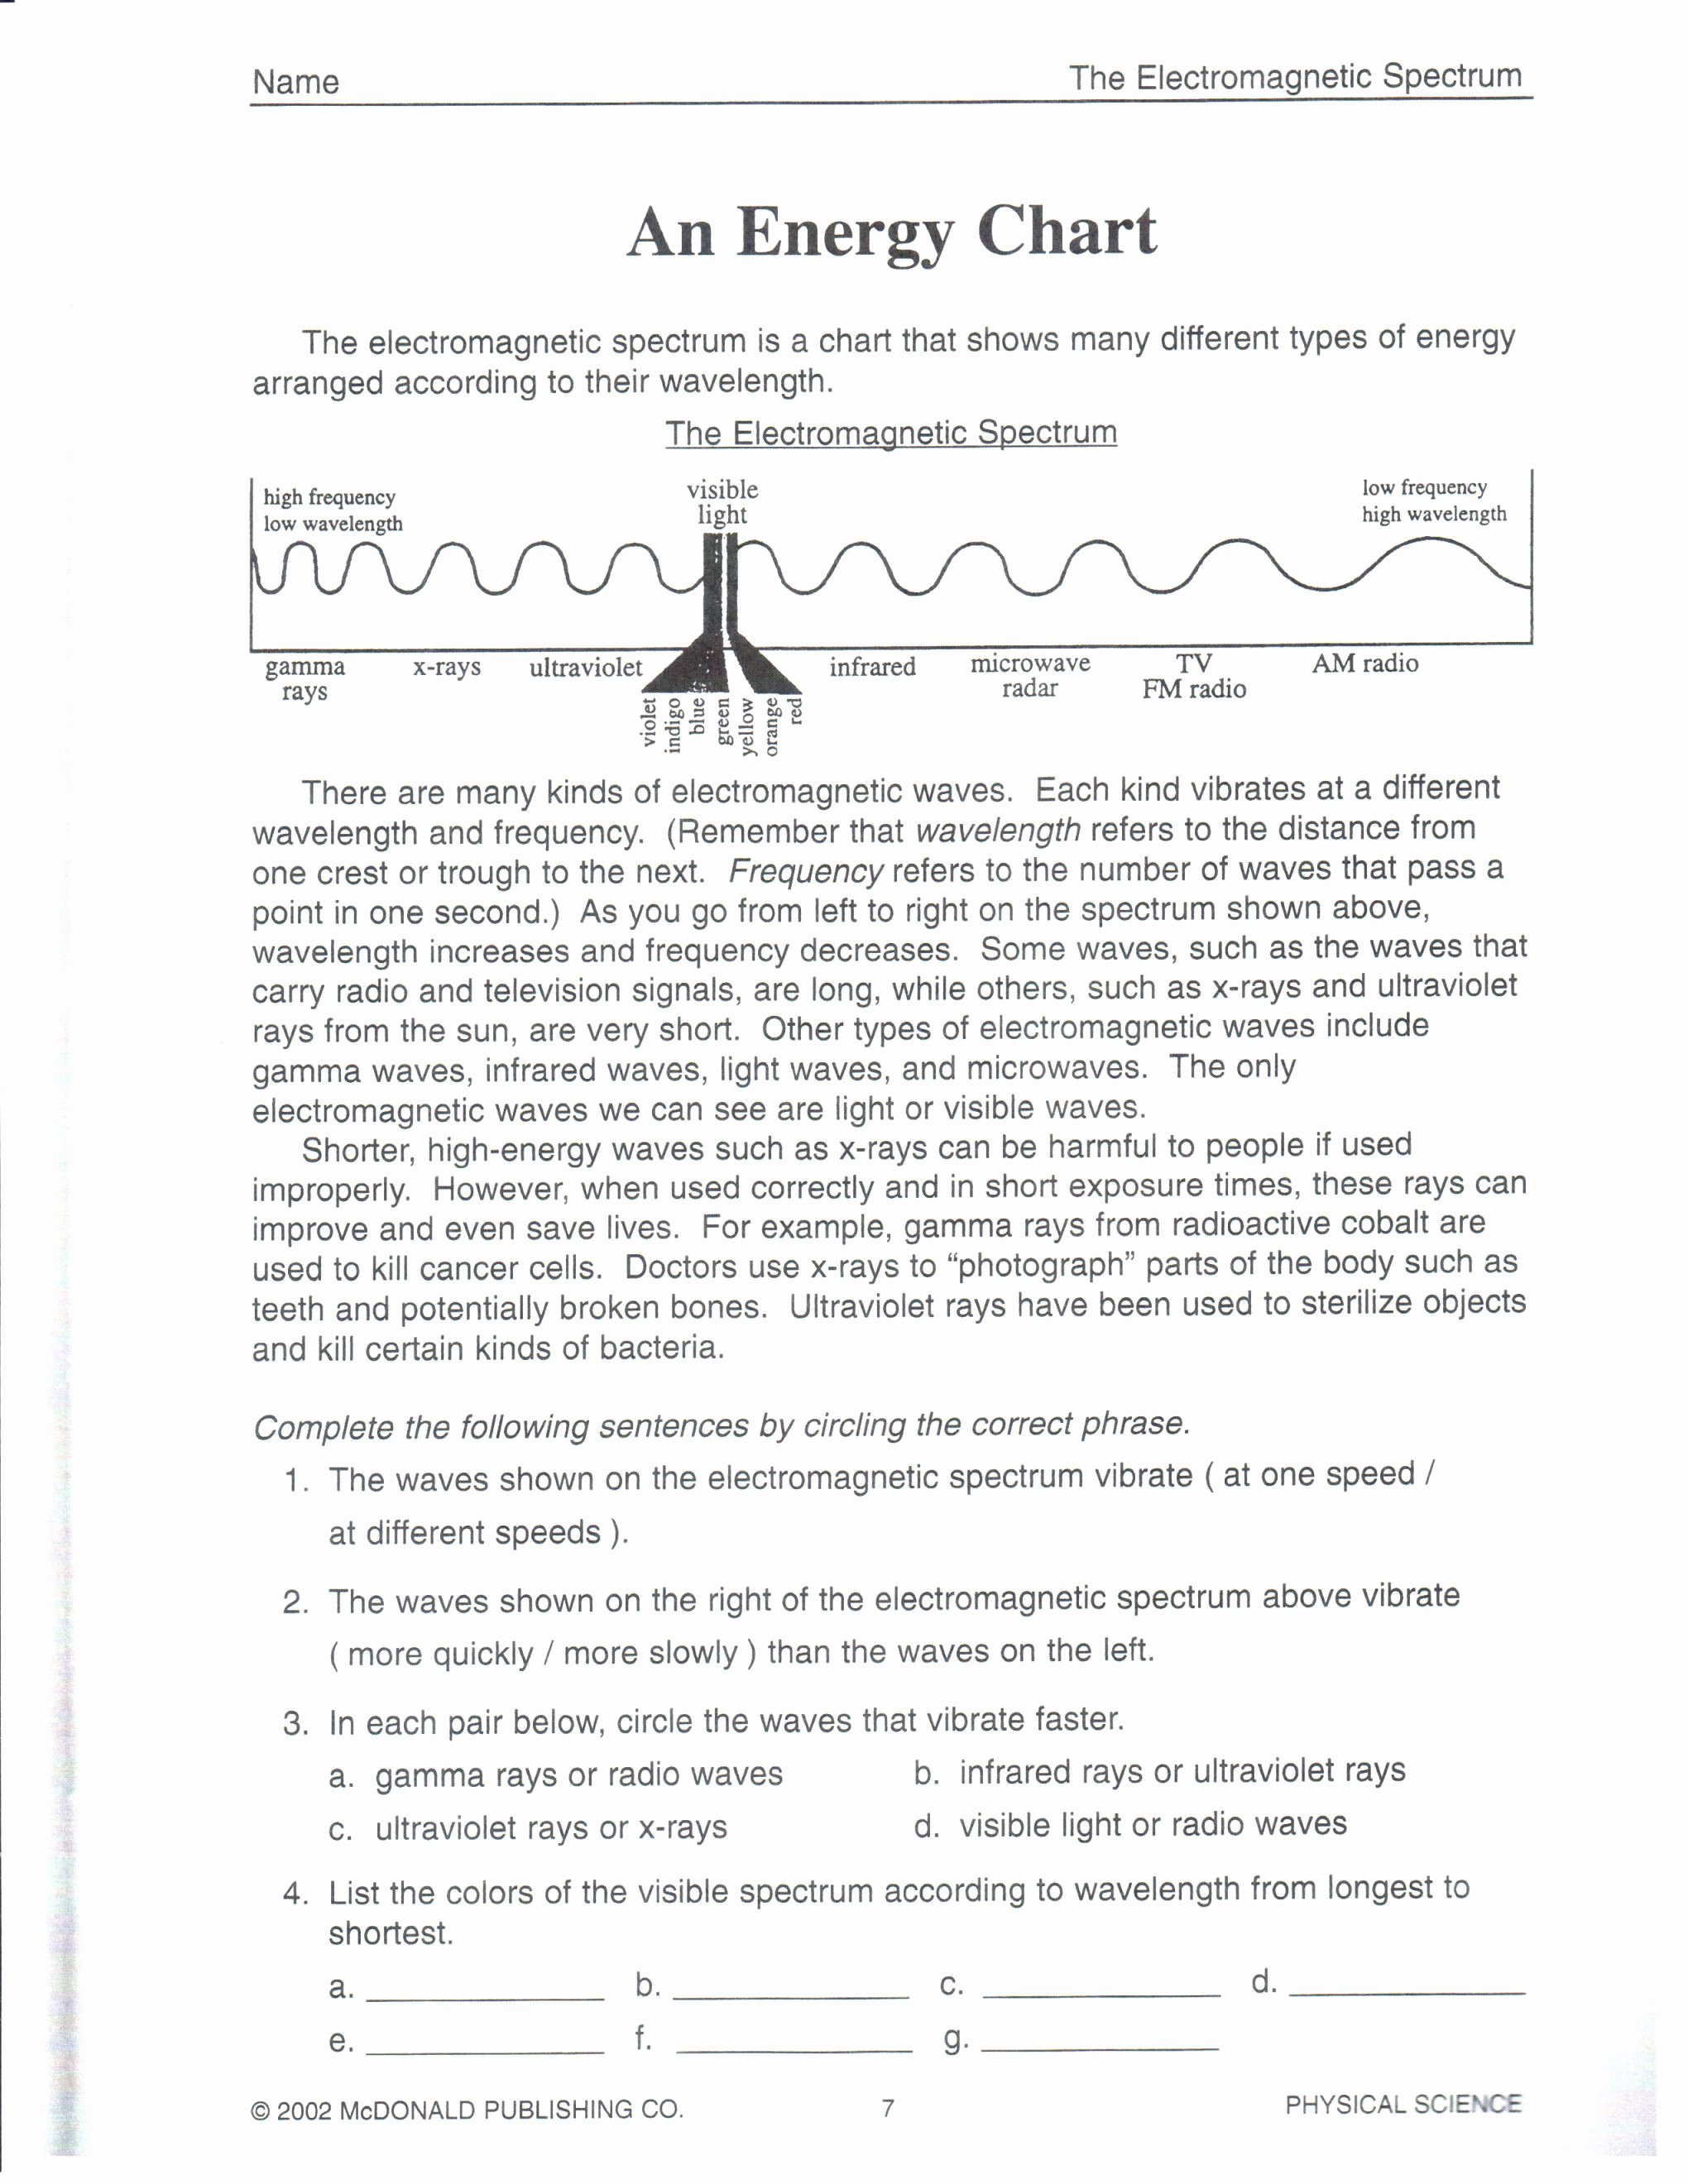 Waves Review Worksheet Answer Key Best Of Wave Review Worksheet Answers